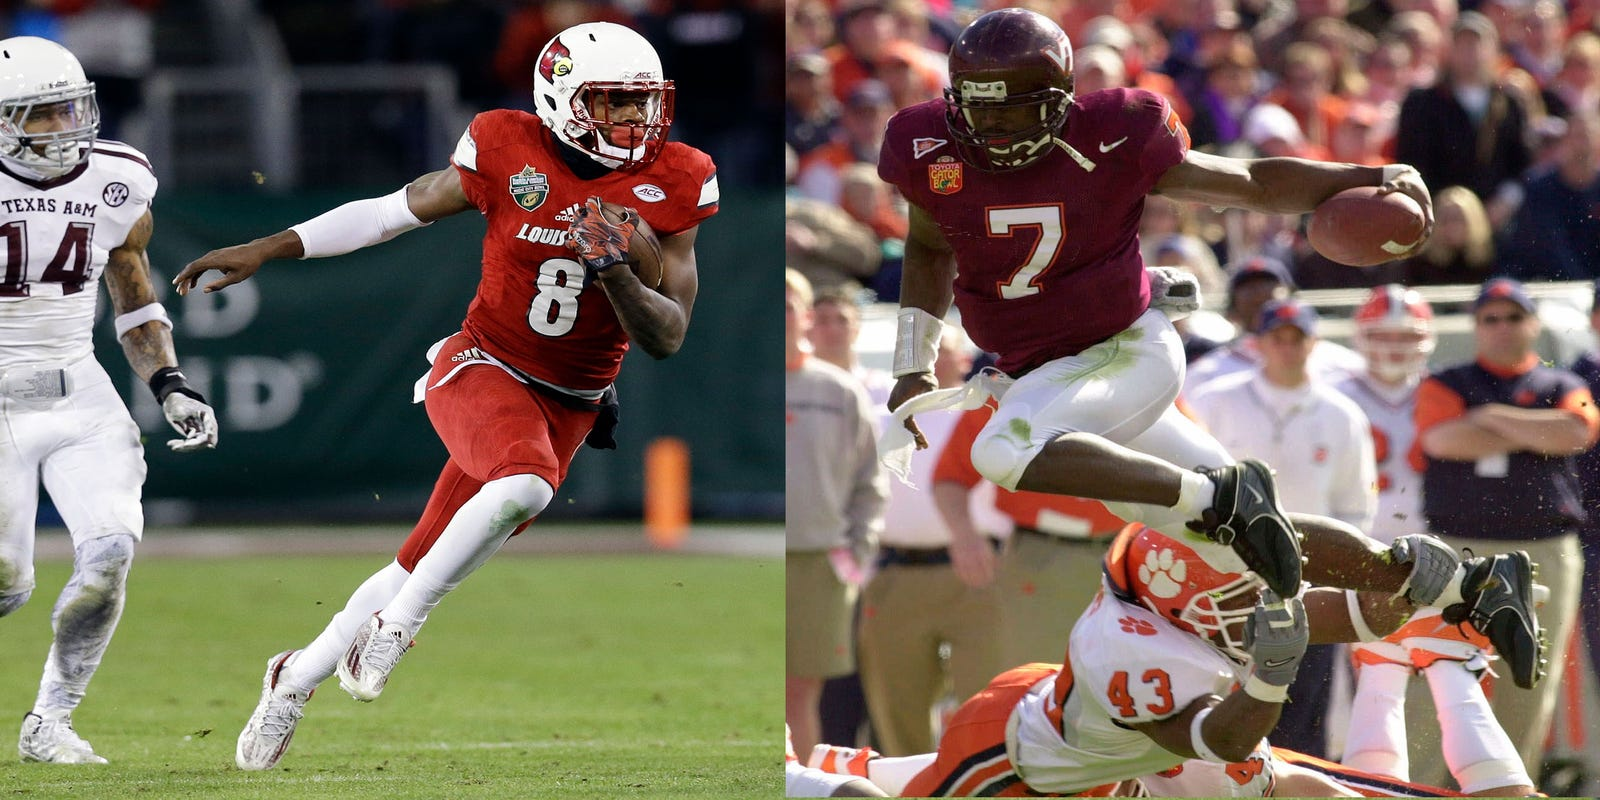 7ef7524a651a Morning Coffee: Michael Vick on Lamar Jackson: 'If I was a GM, I would  draft him'